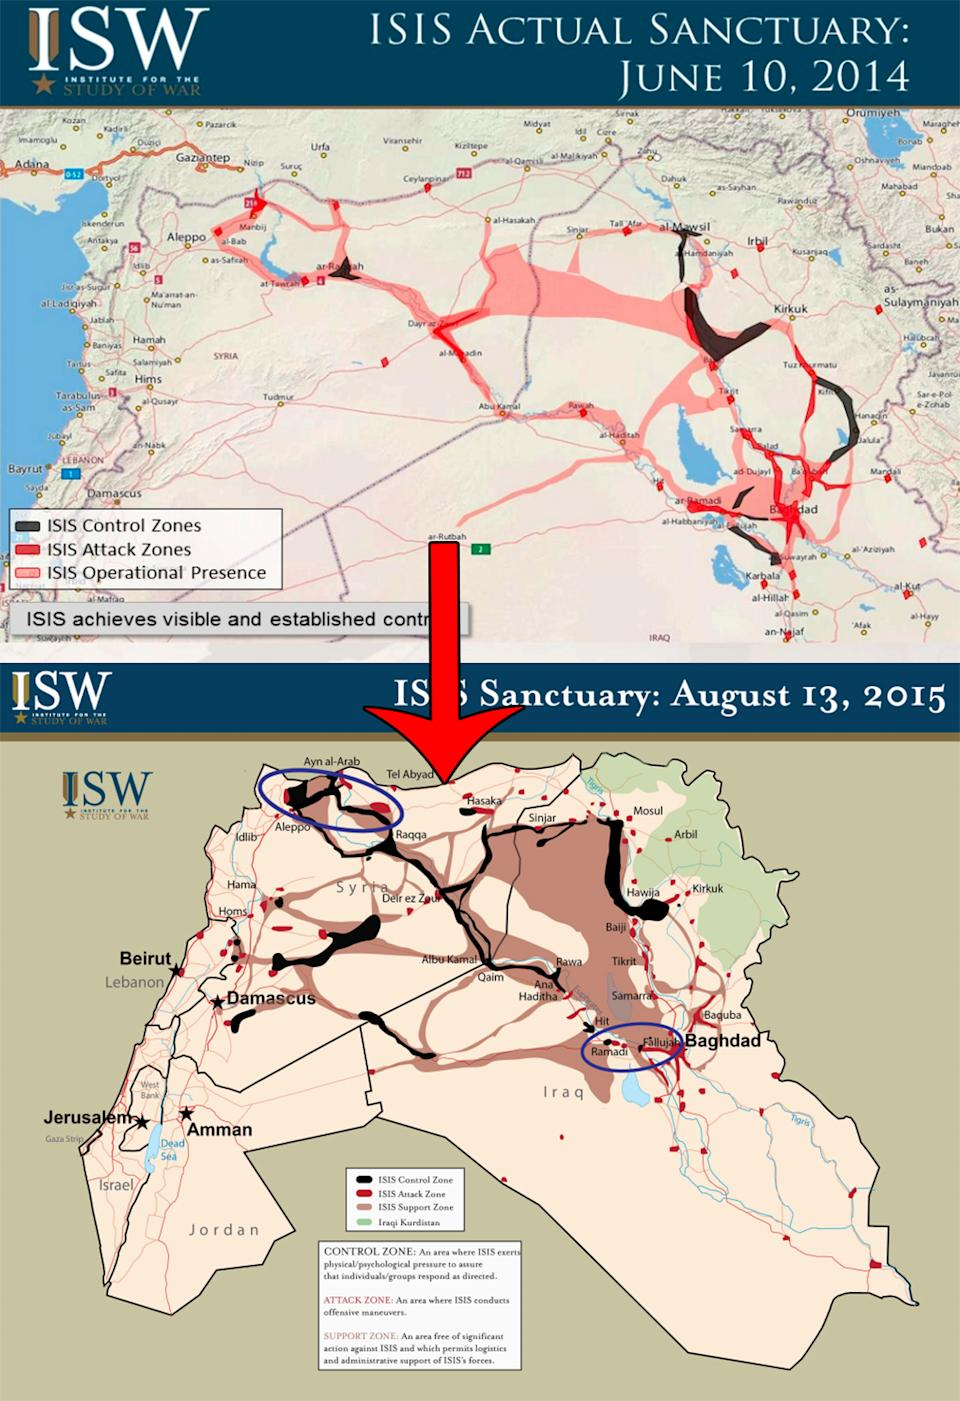 ISIS 2014 to 2015